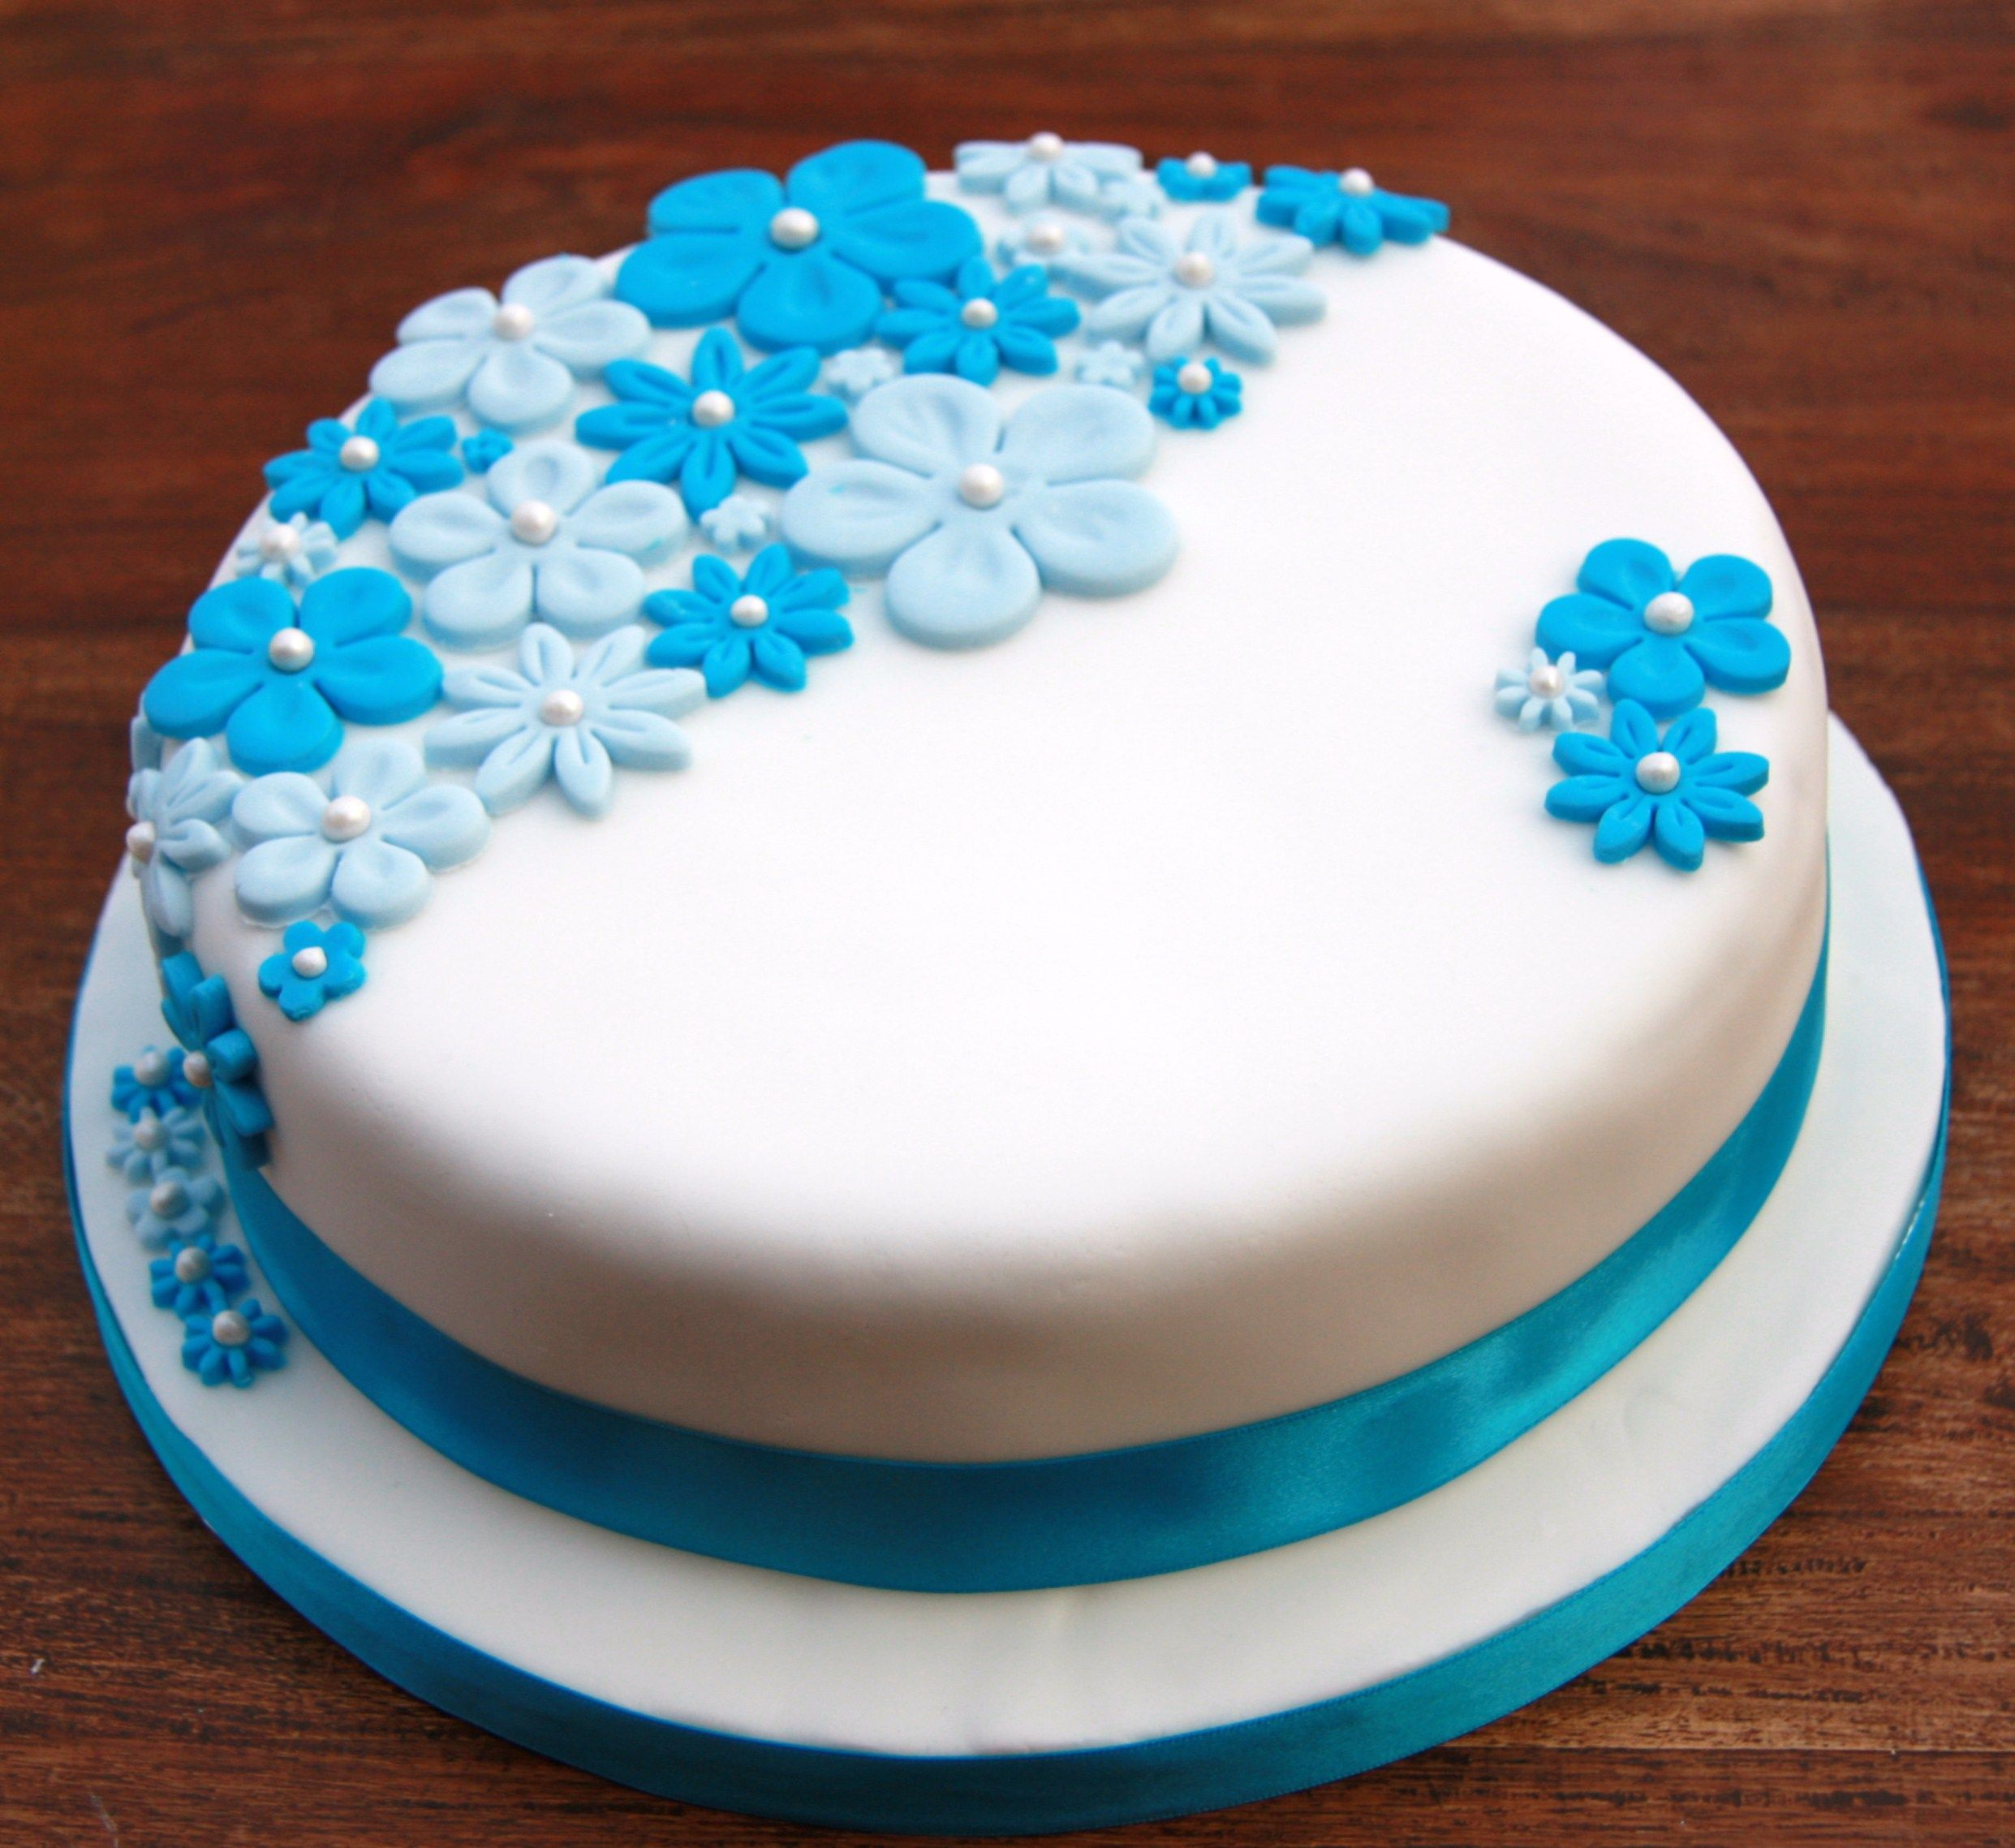 70th birthday cakes for ladies Google Search Birthday